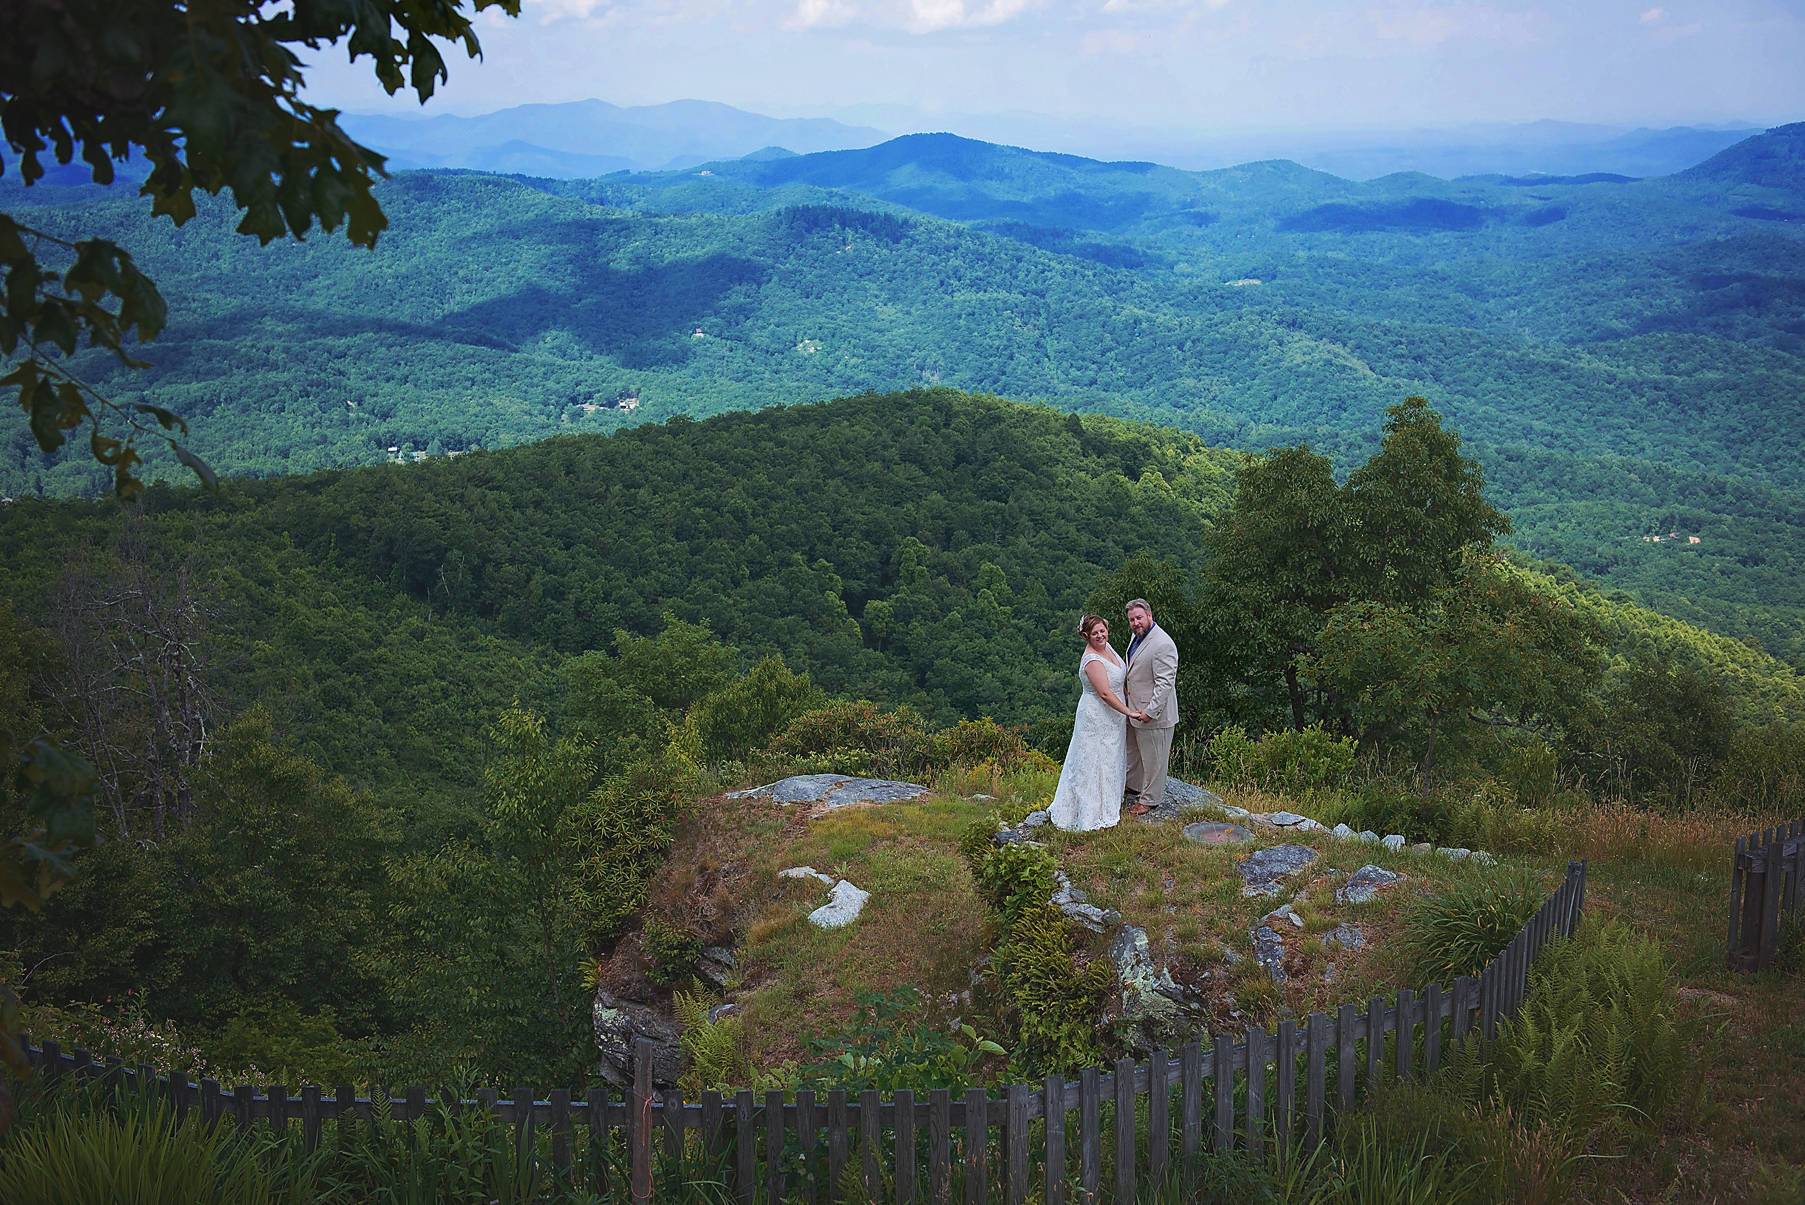 wedding-portrait-bride-groom-mountain